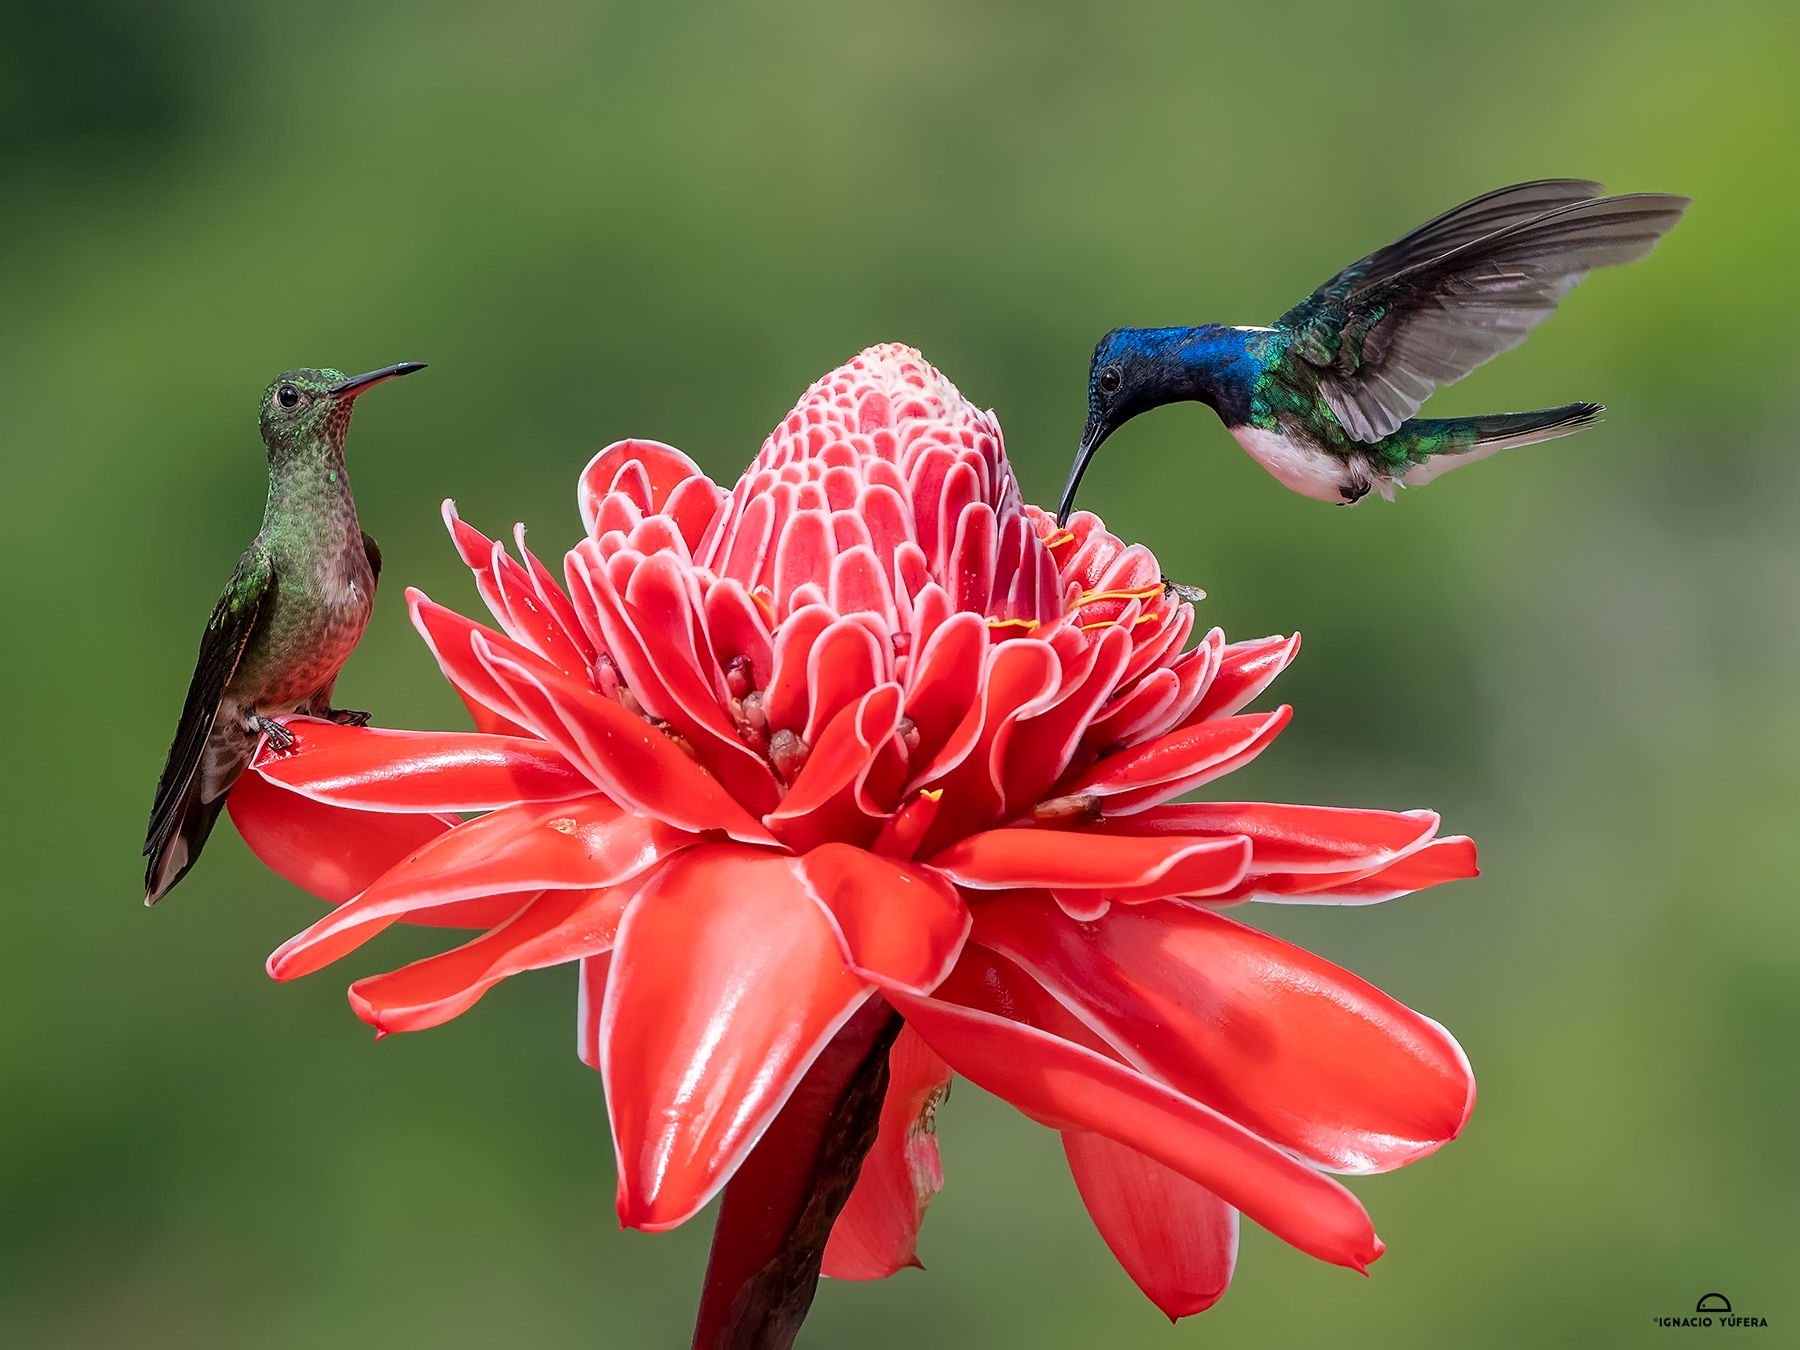 Scaly-breasted Hummingbird (Phaeochroa cuvierii) and White-necked Jacobin (Florisuga mellivora) on ginger torch flower, Chiriquí, Panama